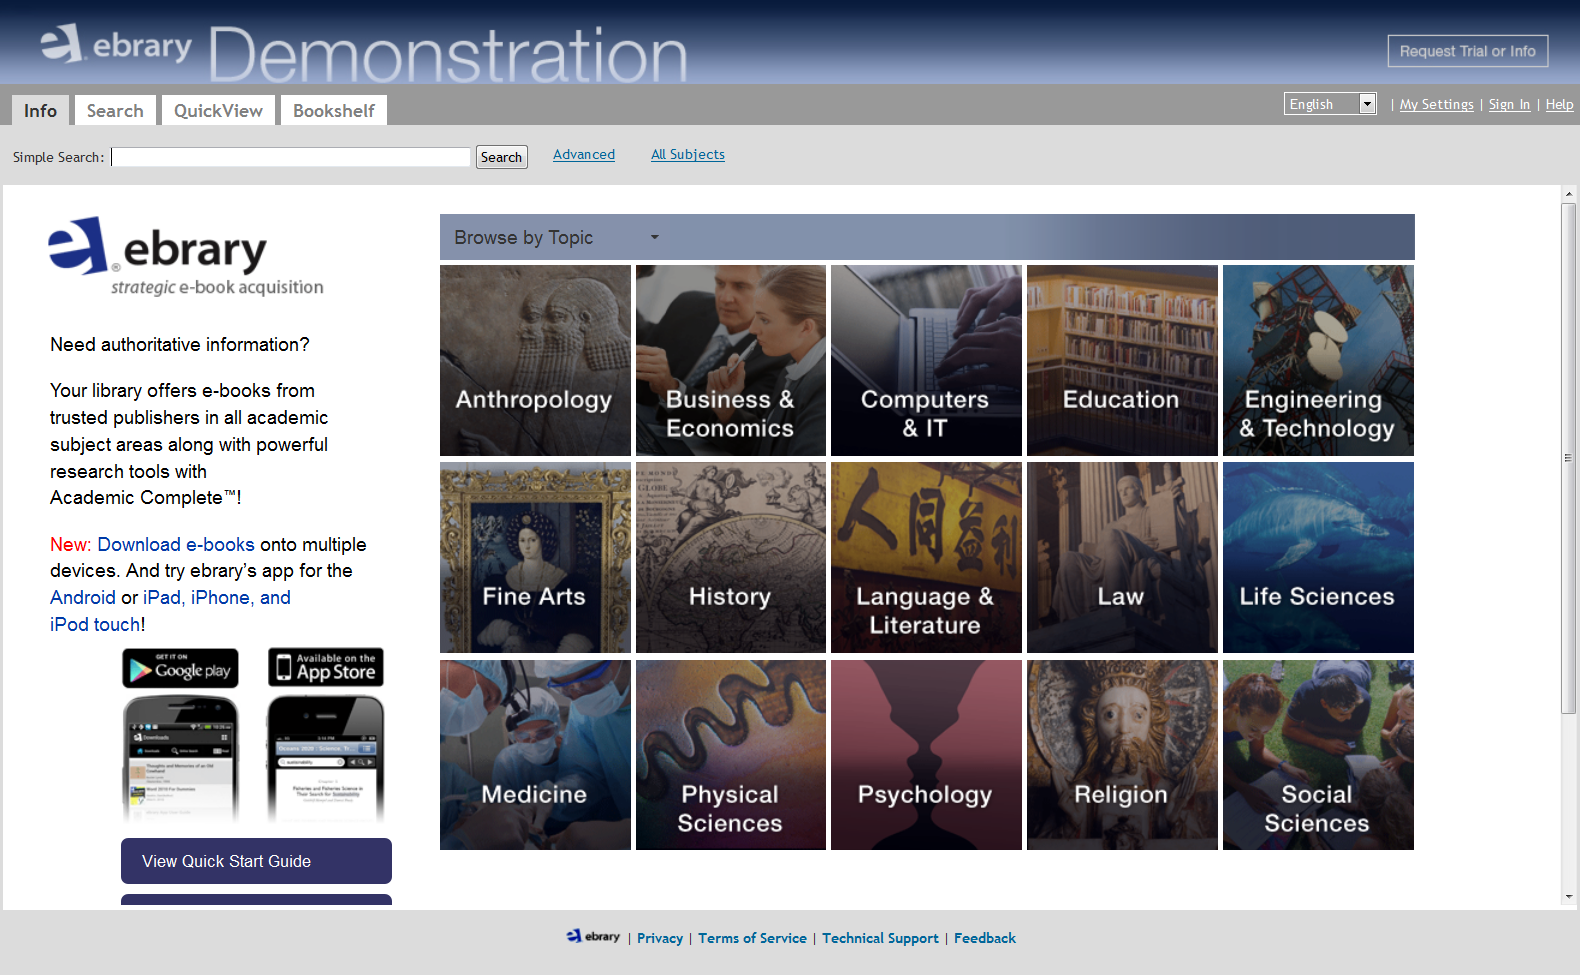 Image of: ebrary home page, search from different categories for various authoritative e-books